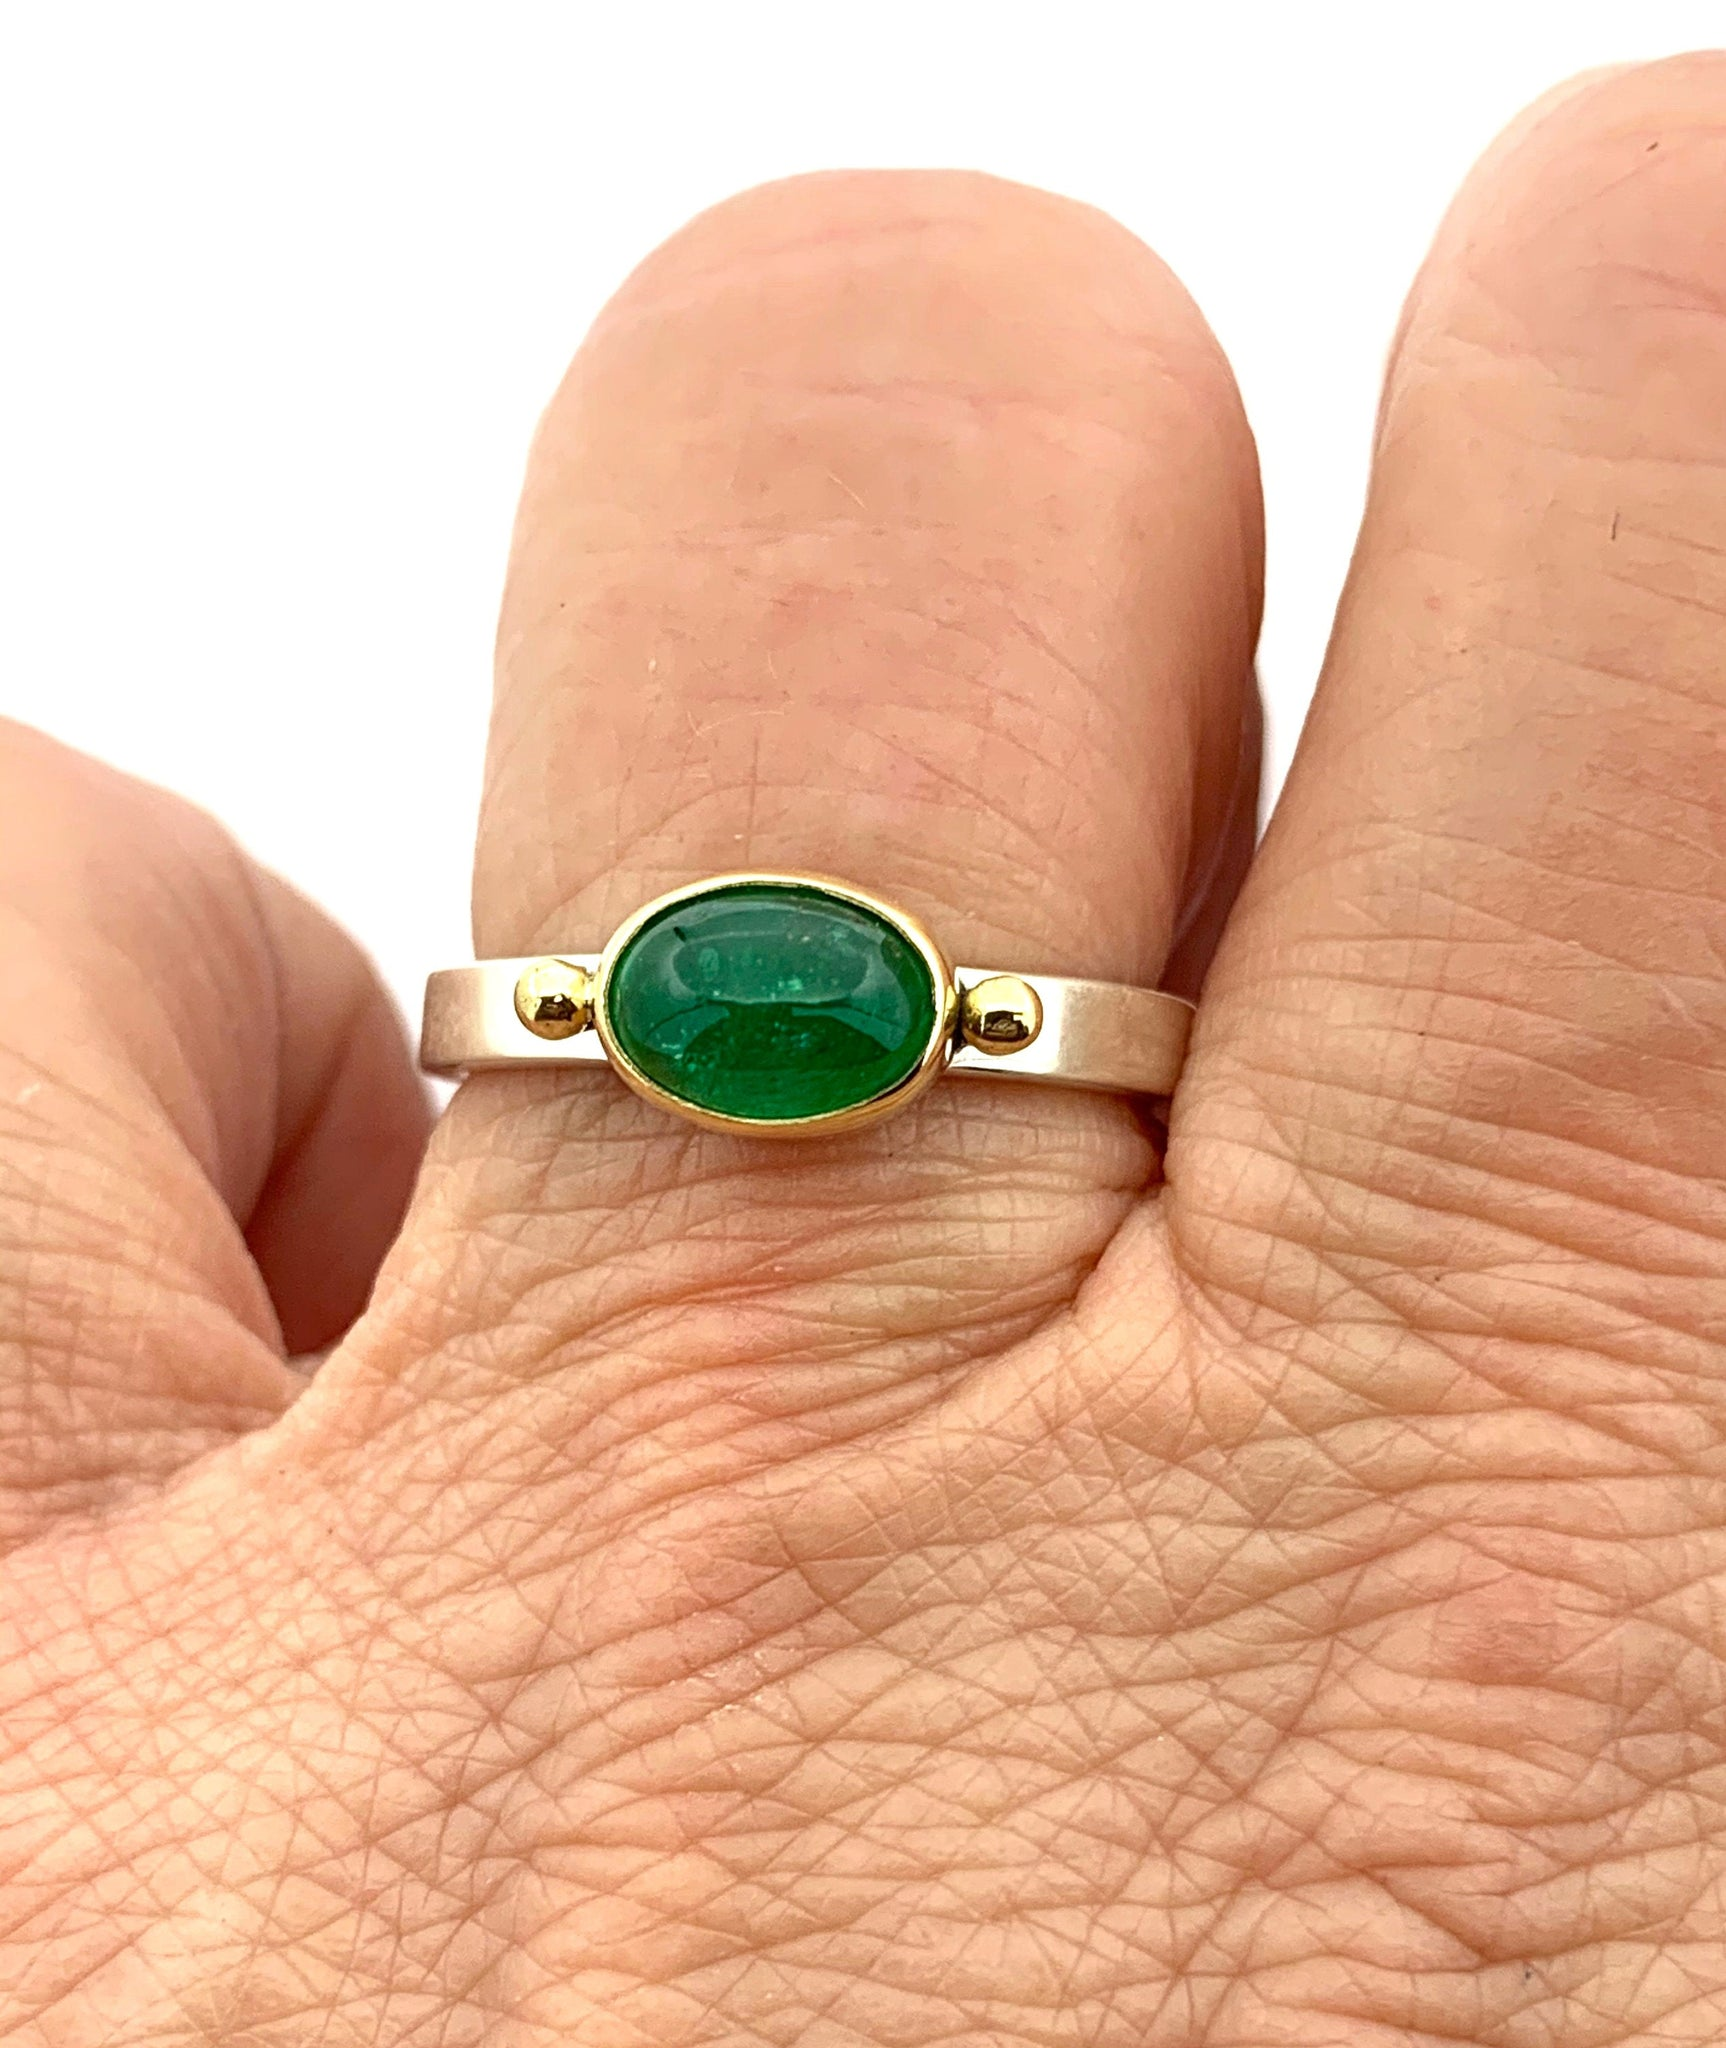 Emerald Ring in Gold and Silver, Emerald Statement Ring, Gemstone Ring, Natural Green Stone Set in 18k Gold, May birthstone ring, Women Ring